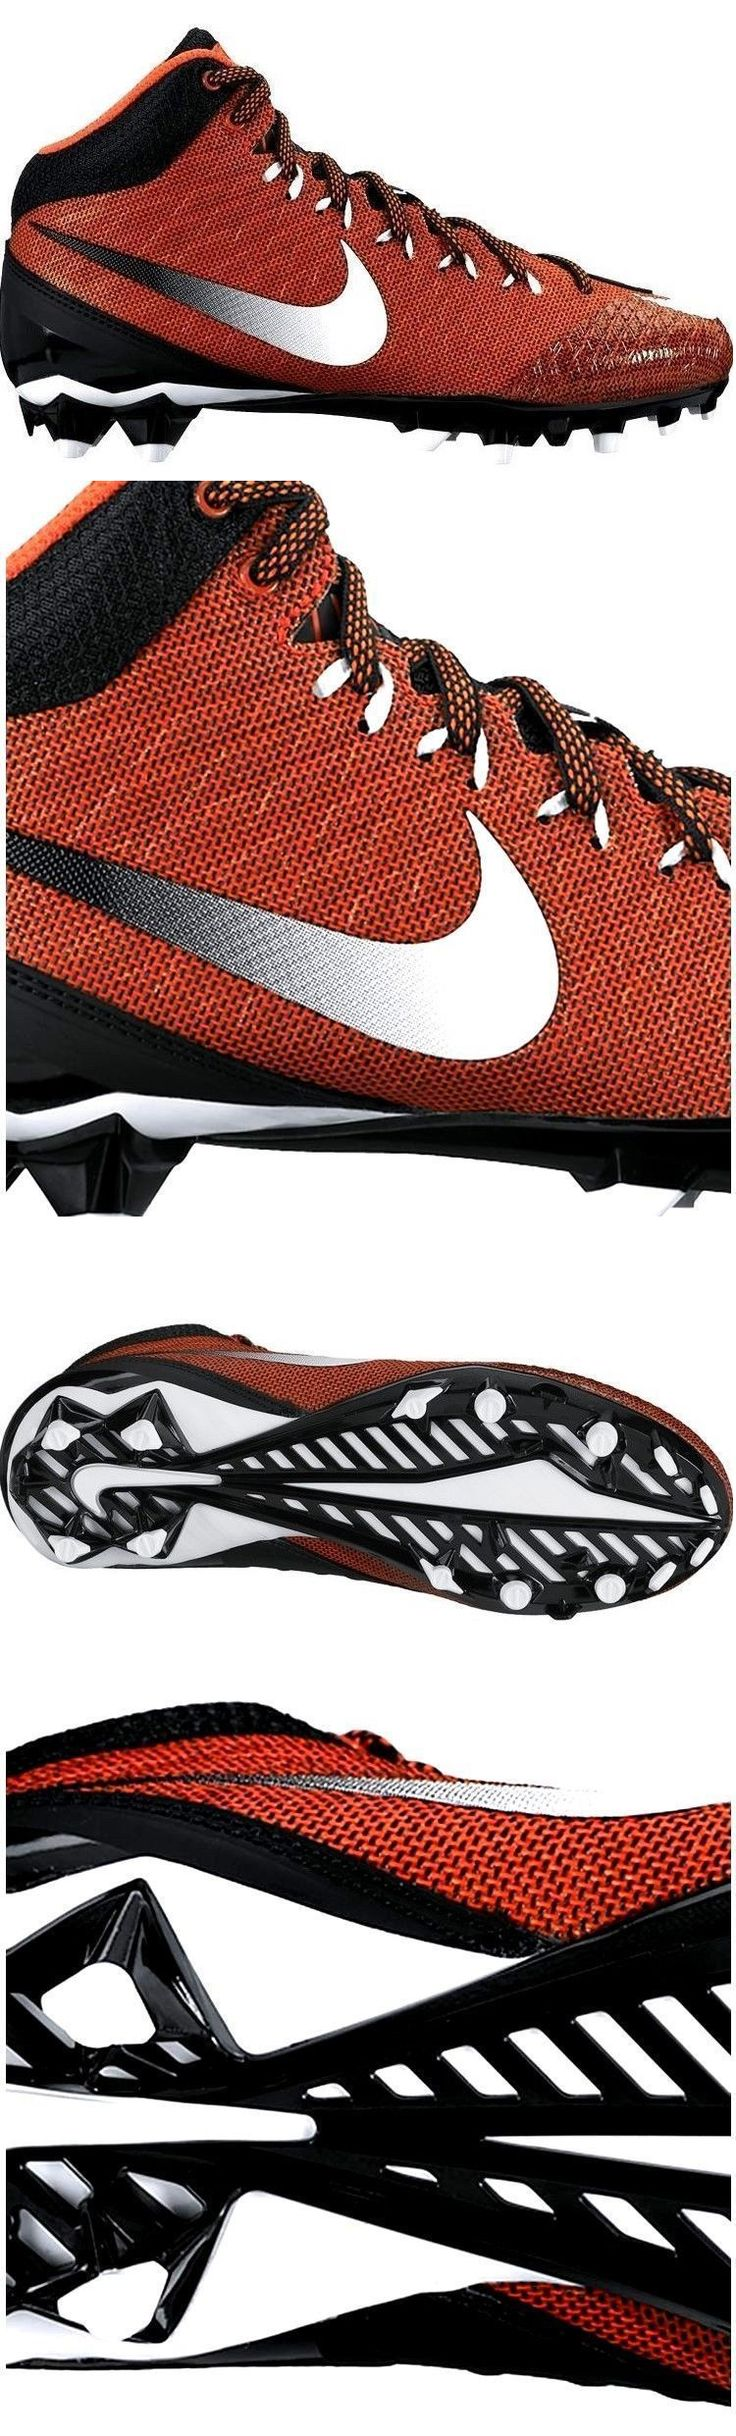 Youth 159118: Nike 723975-800 Calvin Johnson Cj3 Pro Td Football Cleats Size 4Y, 5.5Y Megatron -> BUY IT NOW ONLY: $39.0 on eBay!